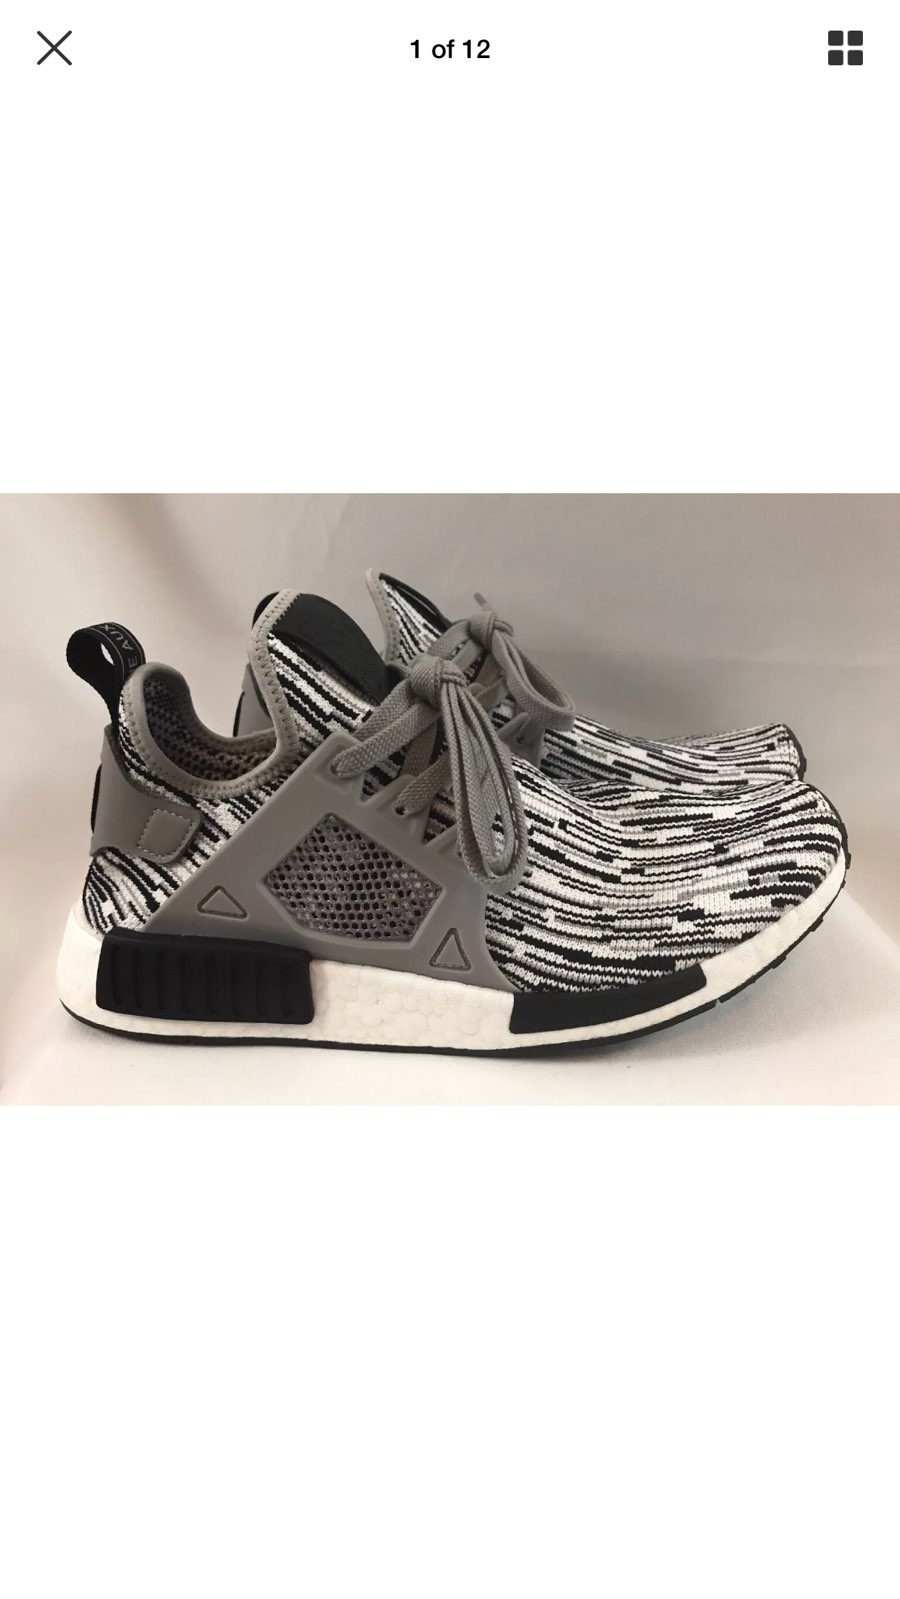 NMD XR1 Duck Camo Box Opening